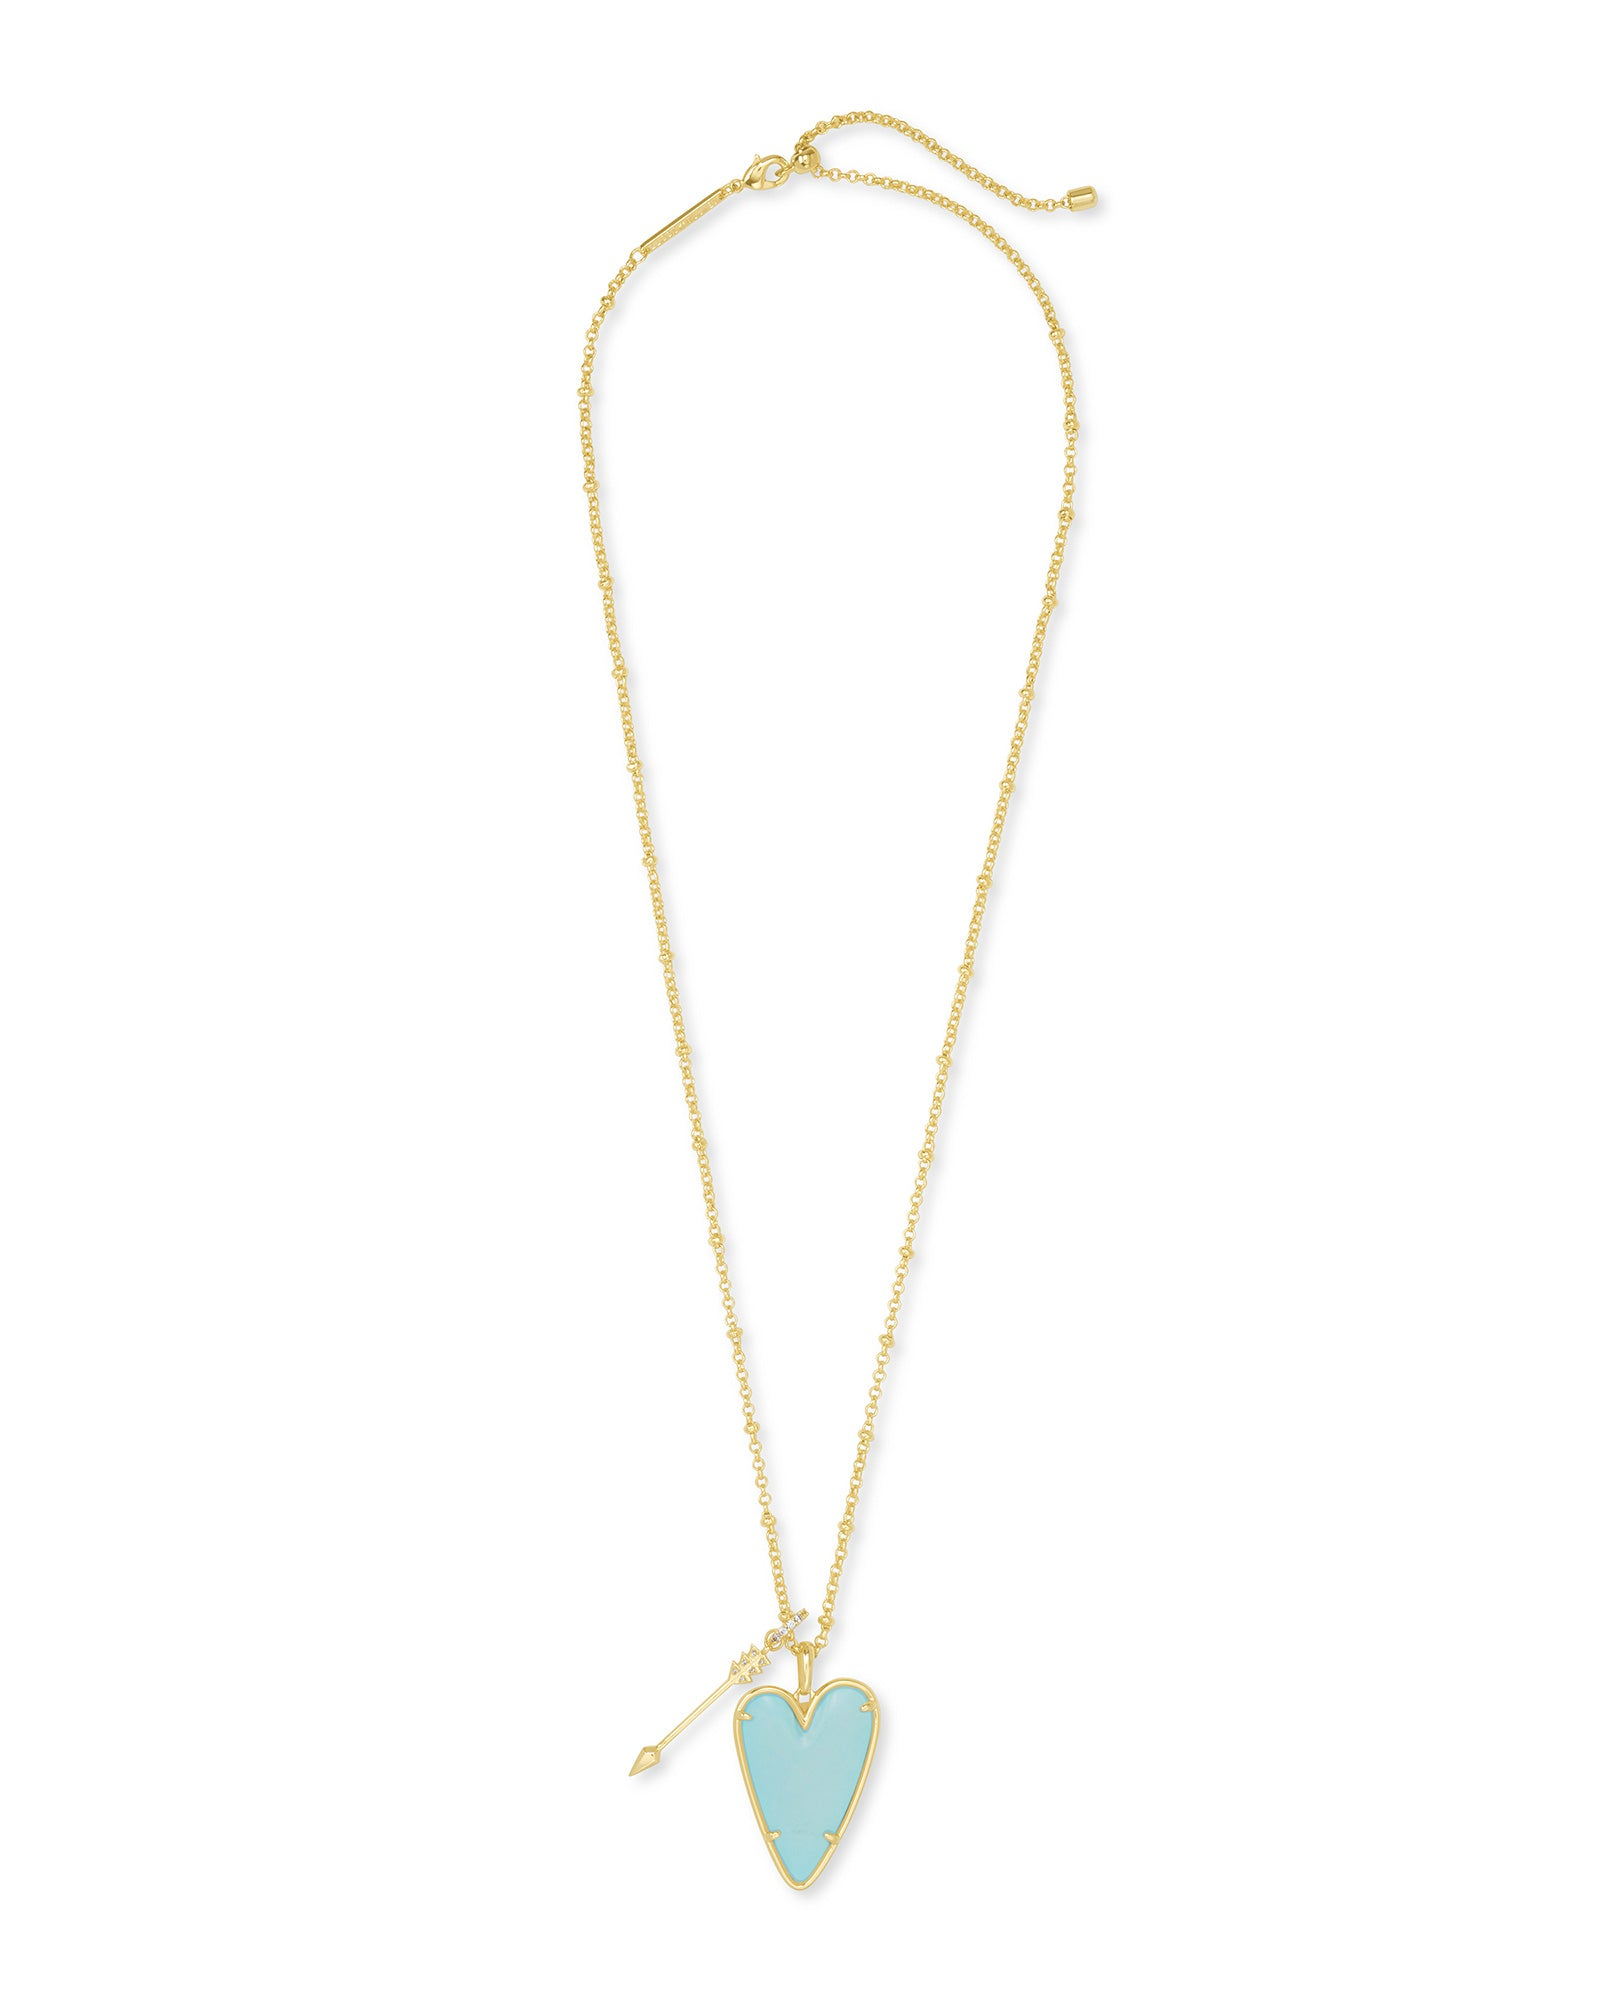 Ansley Long Pendant Necklace in Gold Light Blue Magnesite